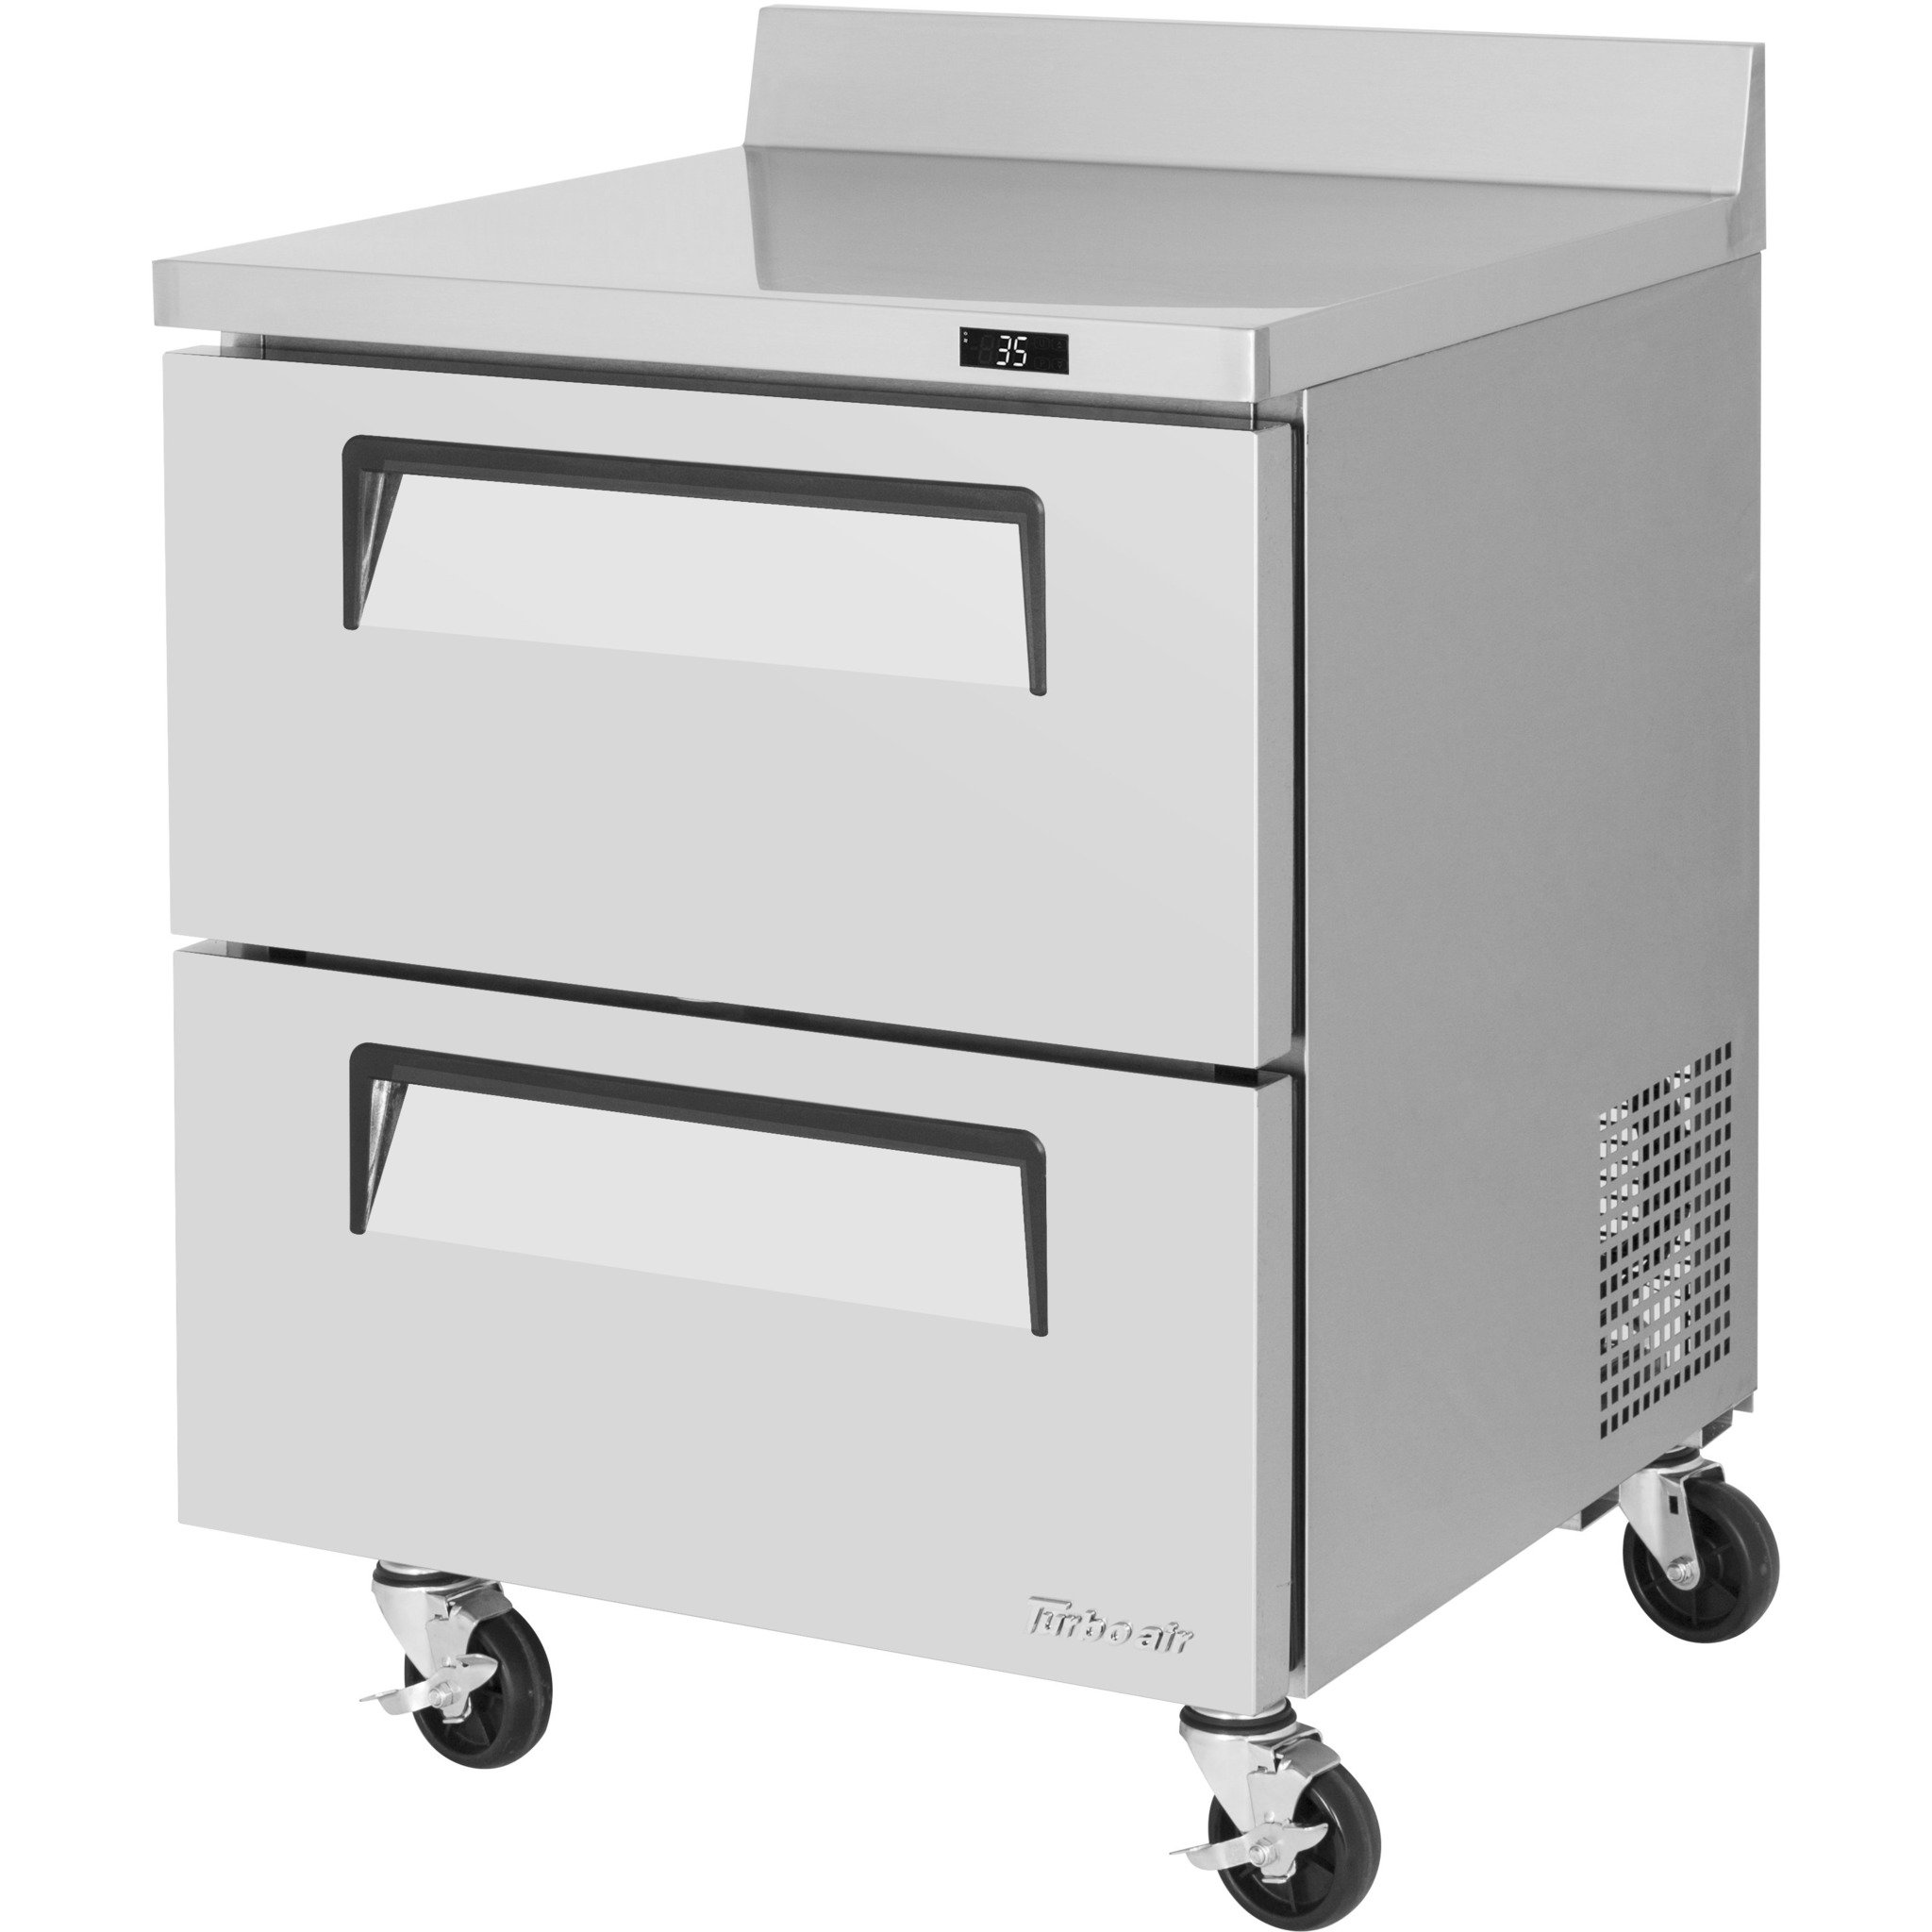 Turbo Air Commercial Work Top Refrigerator 28 With 2 Drawers